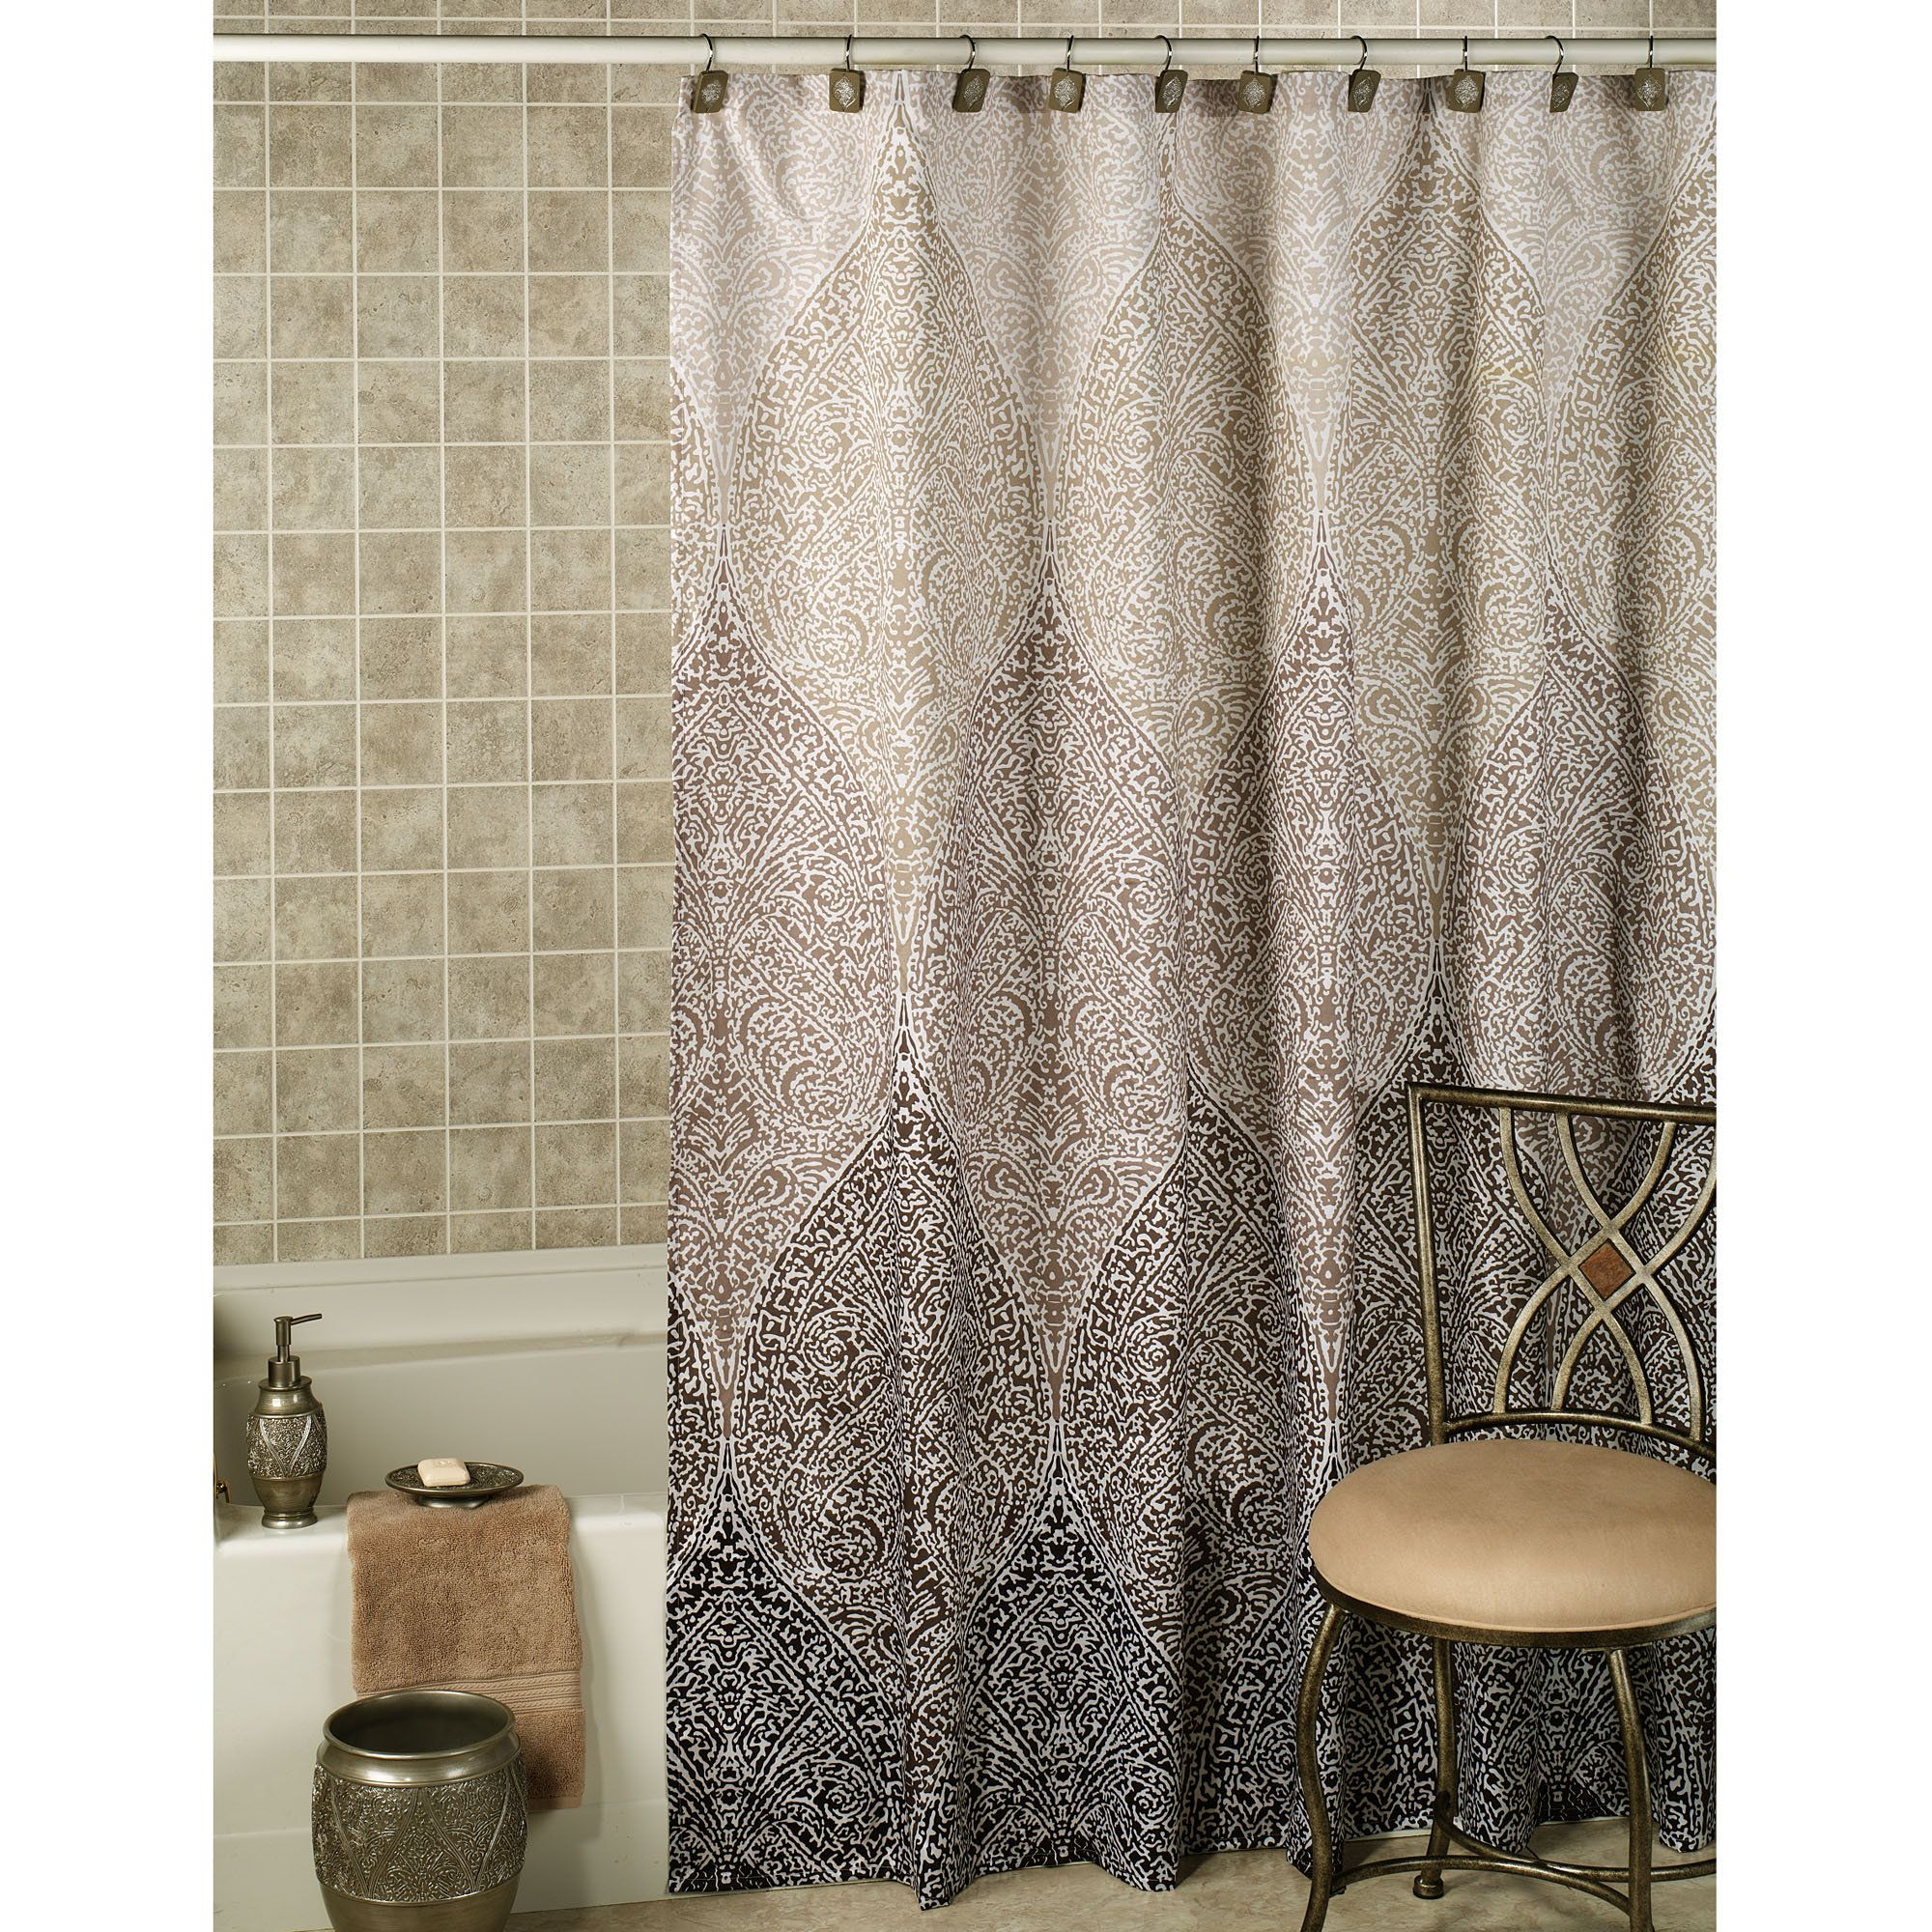 Casablanca Ombre Moroccan Design Shower Curtain Vinyl Shower